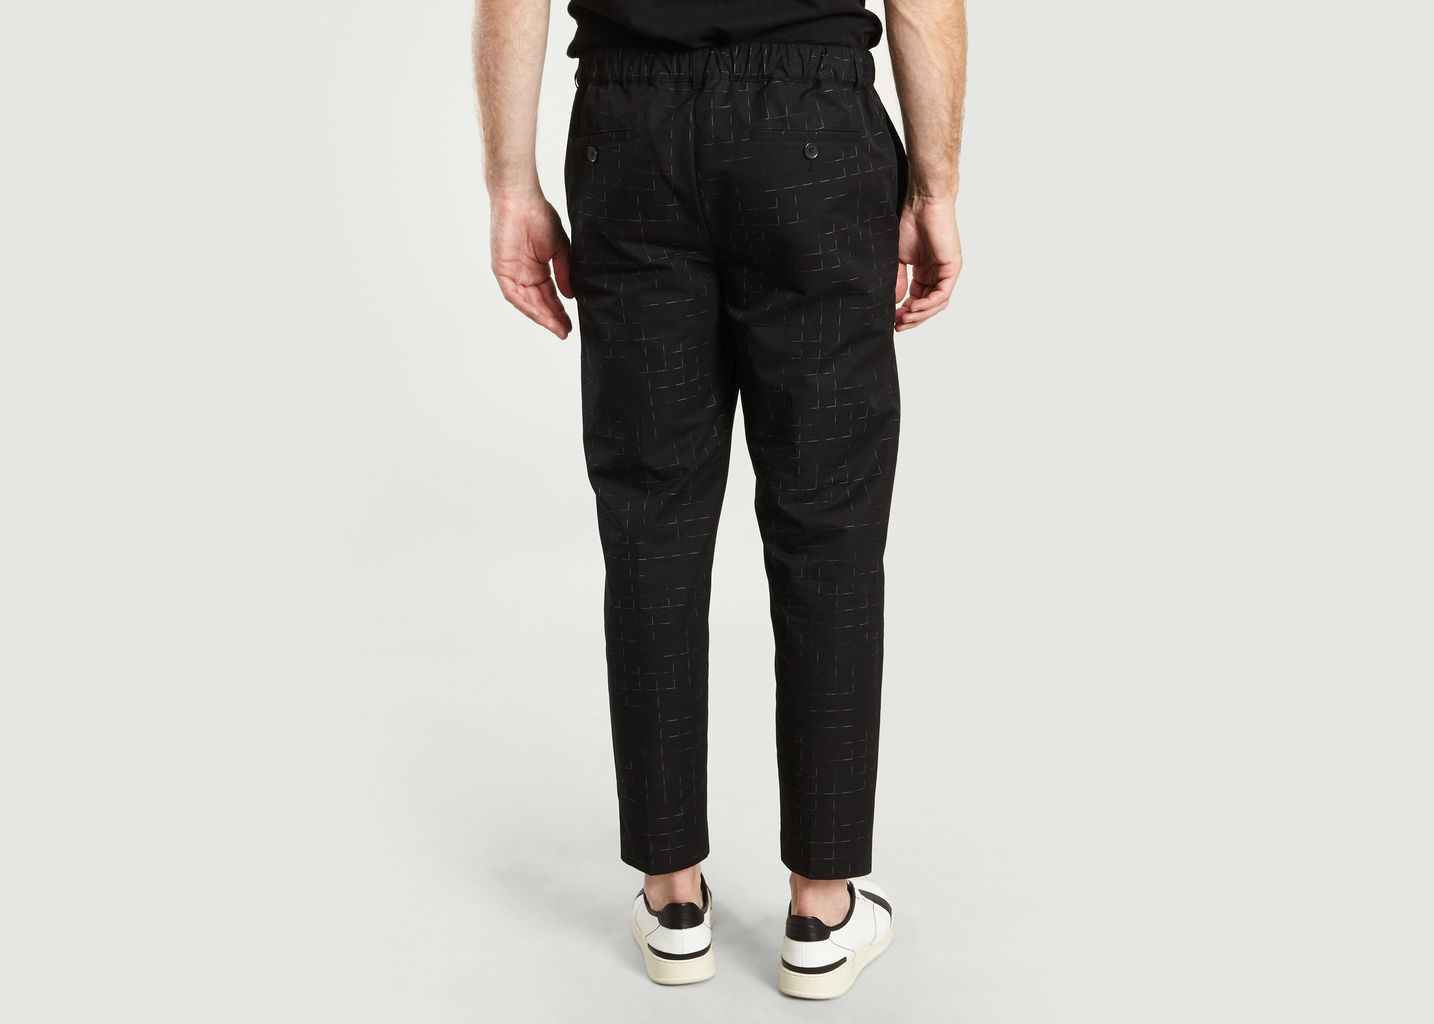 Pantalon City à Carreaux - Maison Kitsuné